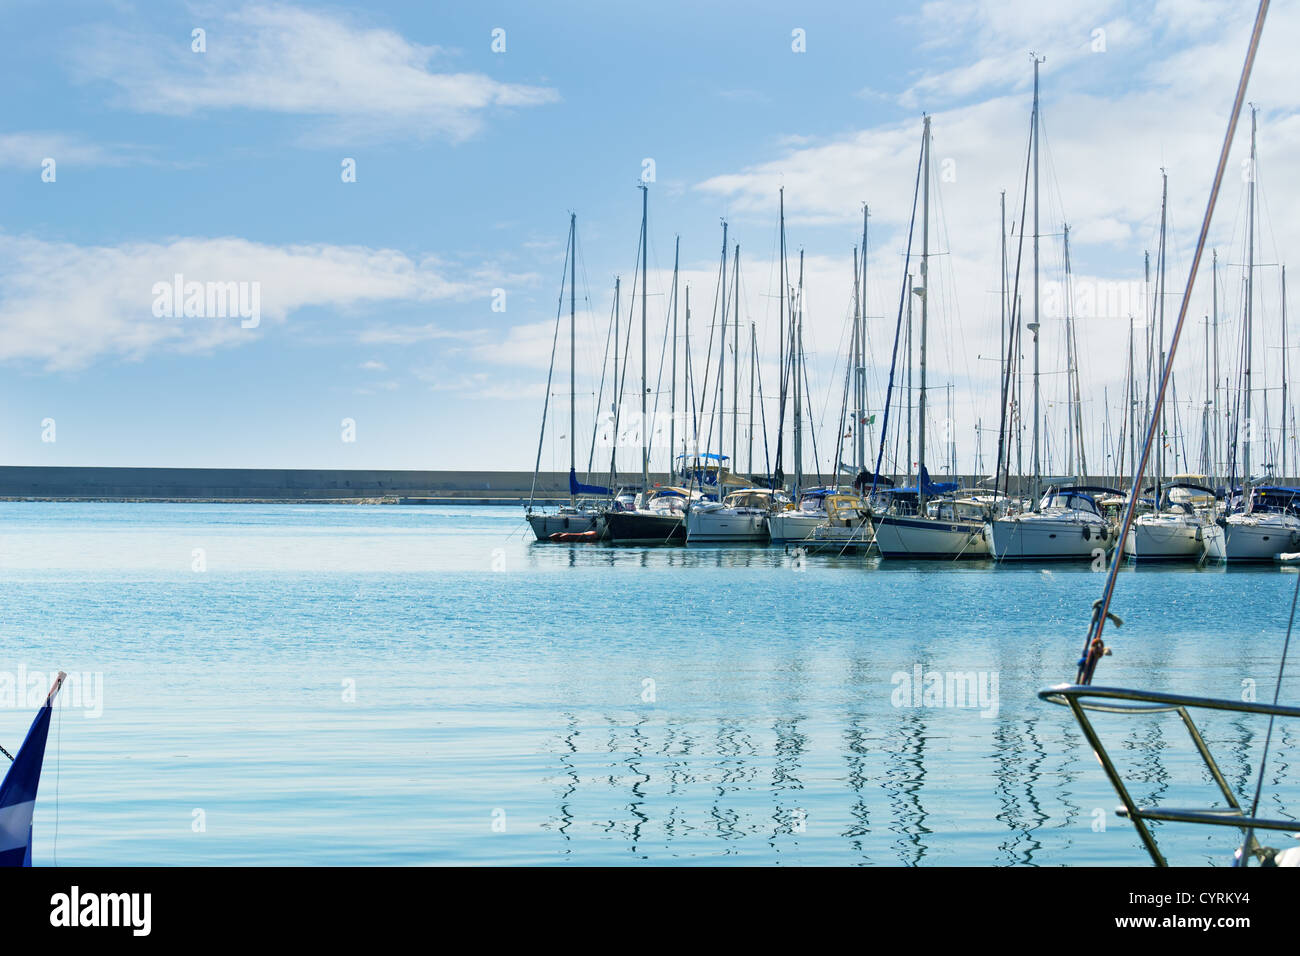 group of boats on a sunny day - Stock Image